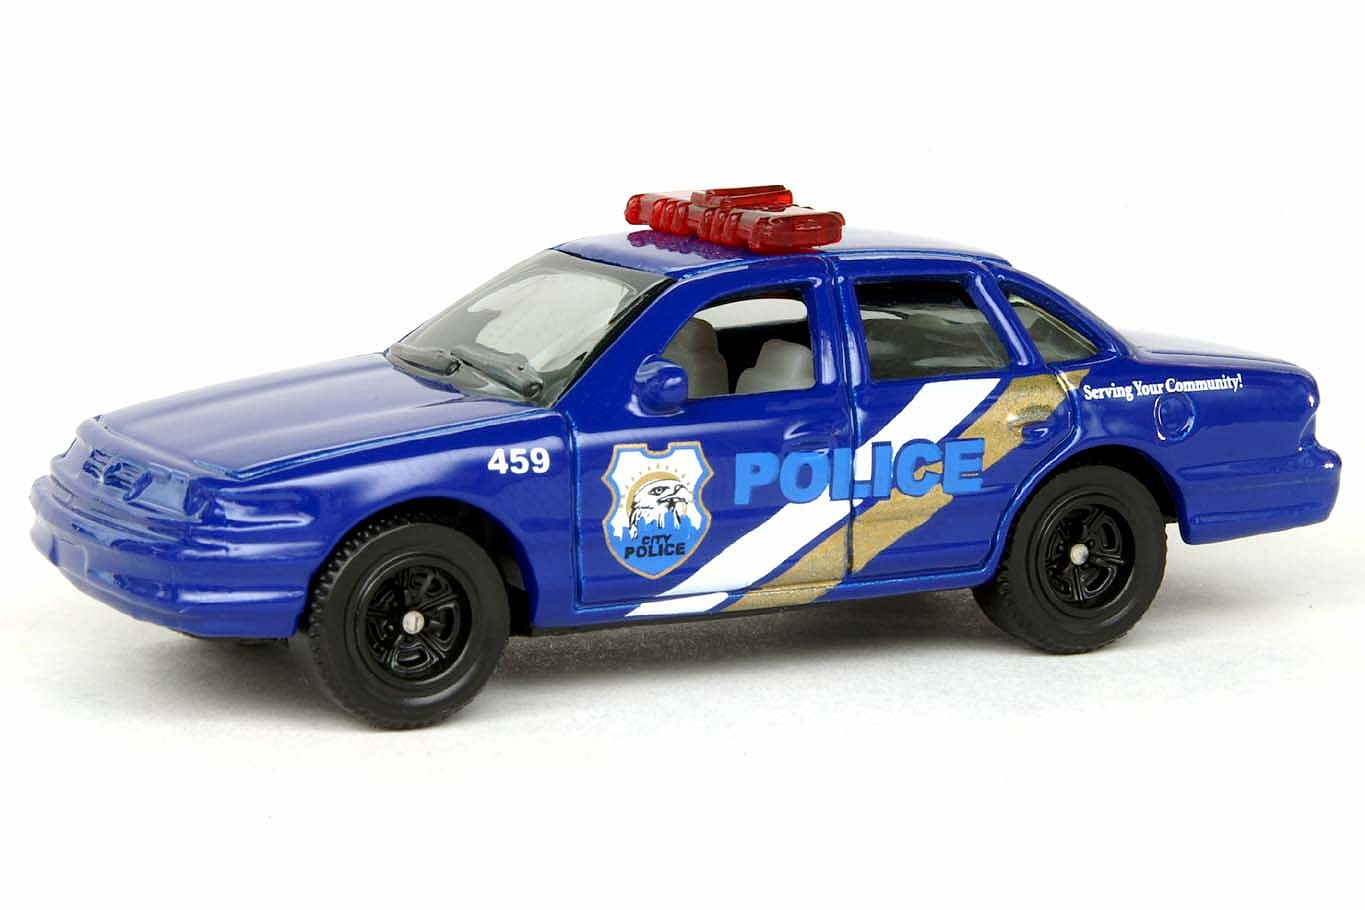 1997 Ford Crown Victoria Police Car | Matchbox Cars Wiki ...